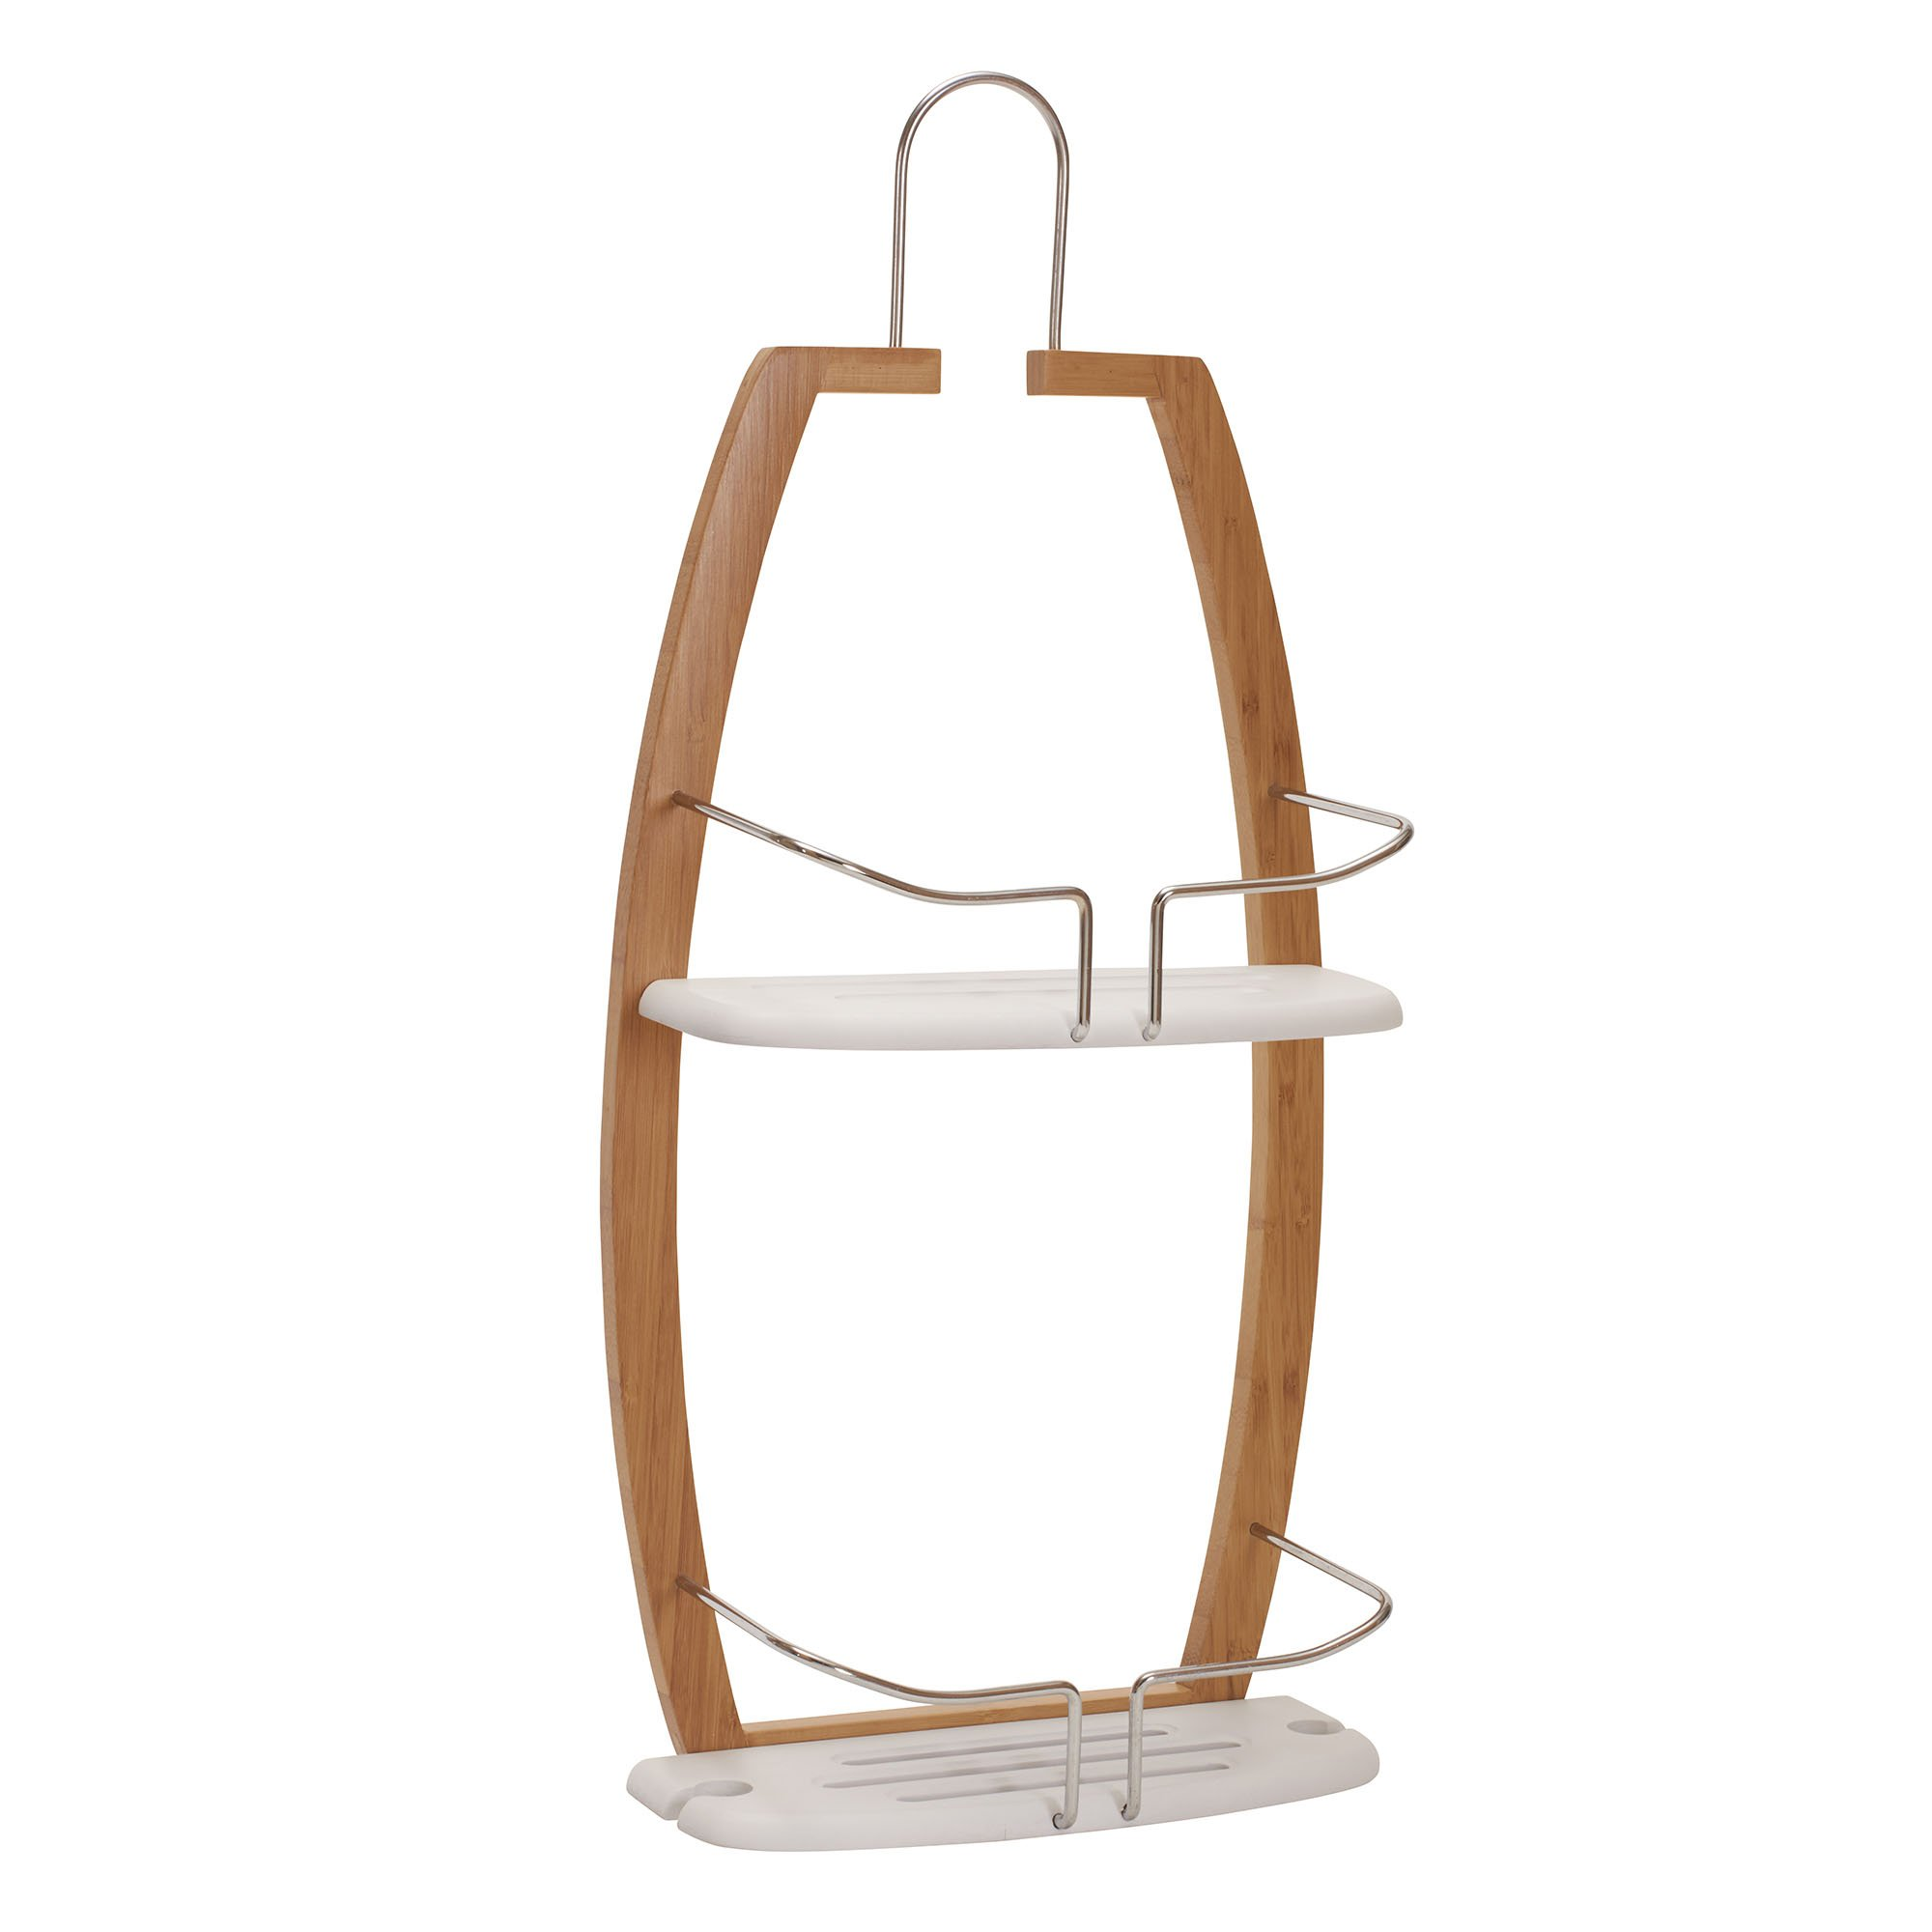 Household Essentials 2445-1 Elements Bamboo Shower Caddy by Household Essentials (Image #1)